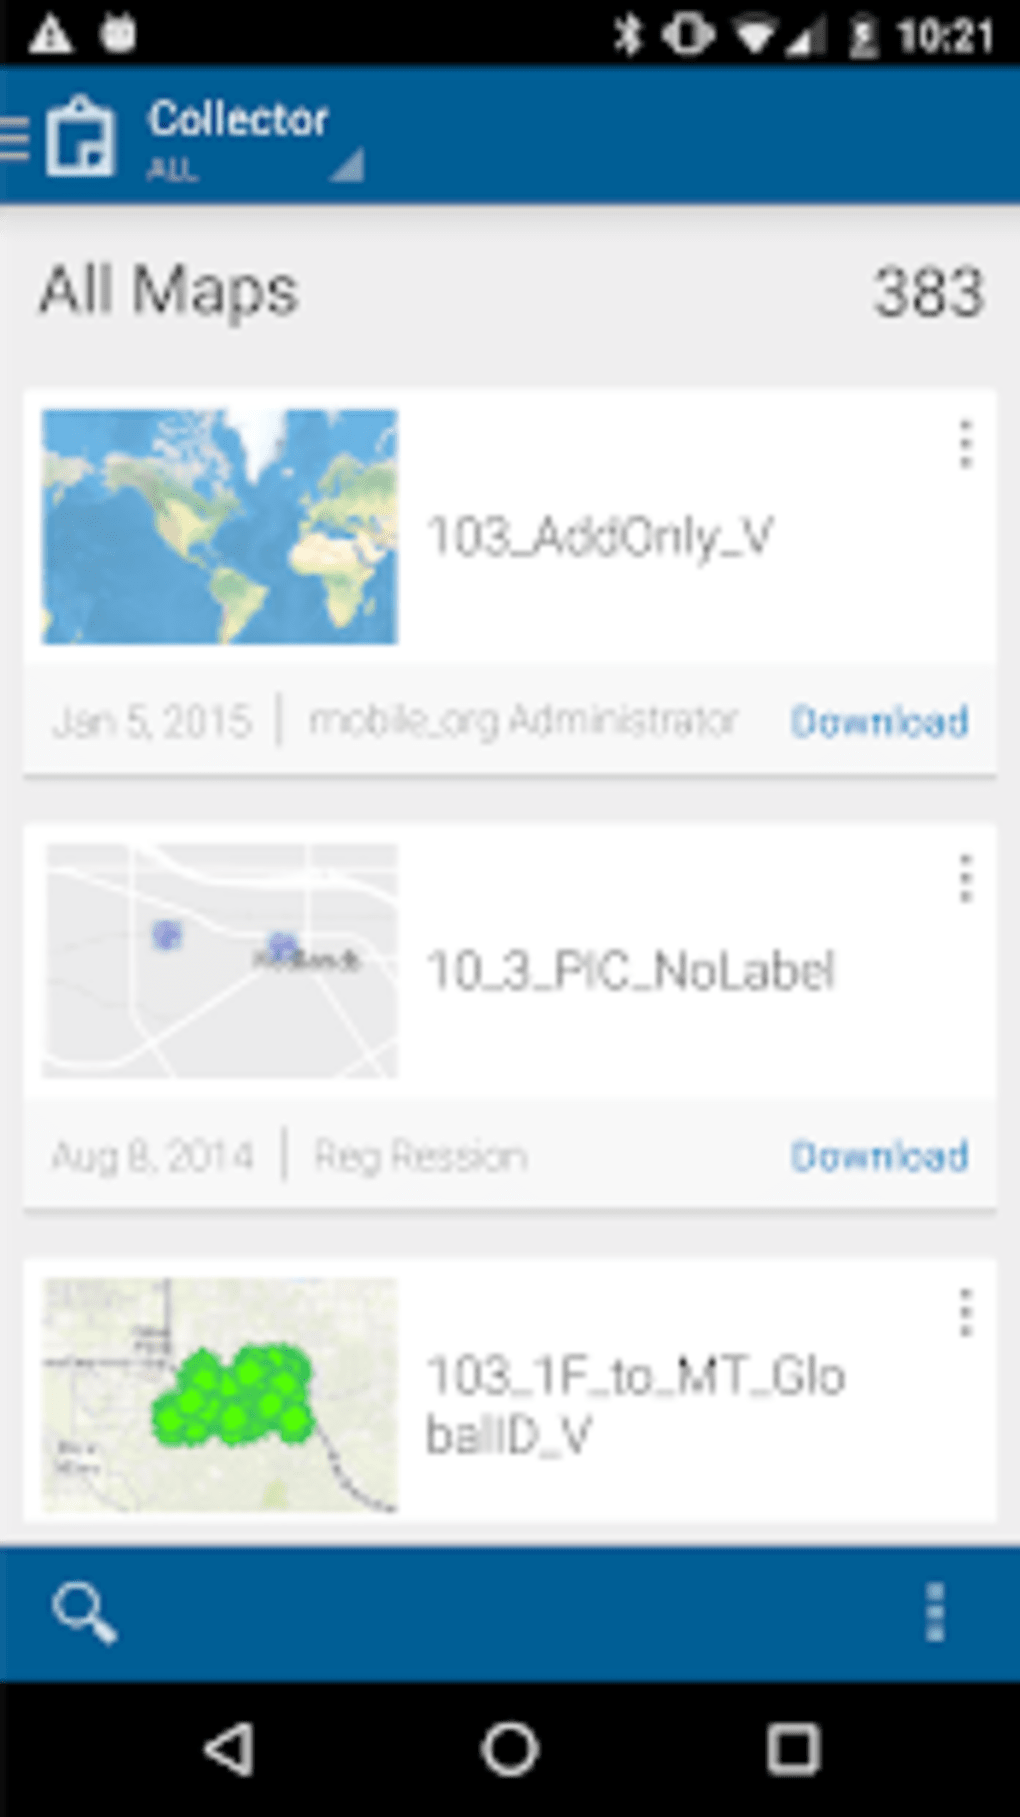 Collector for ArcGIS for Android - Download